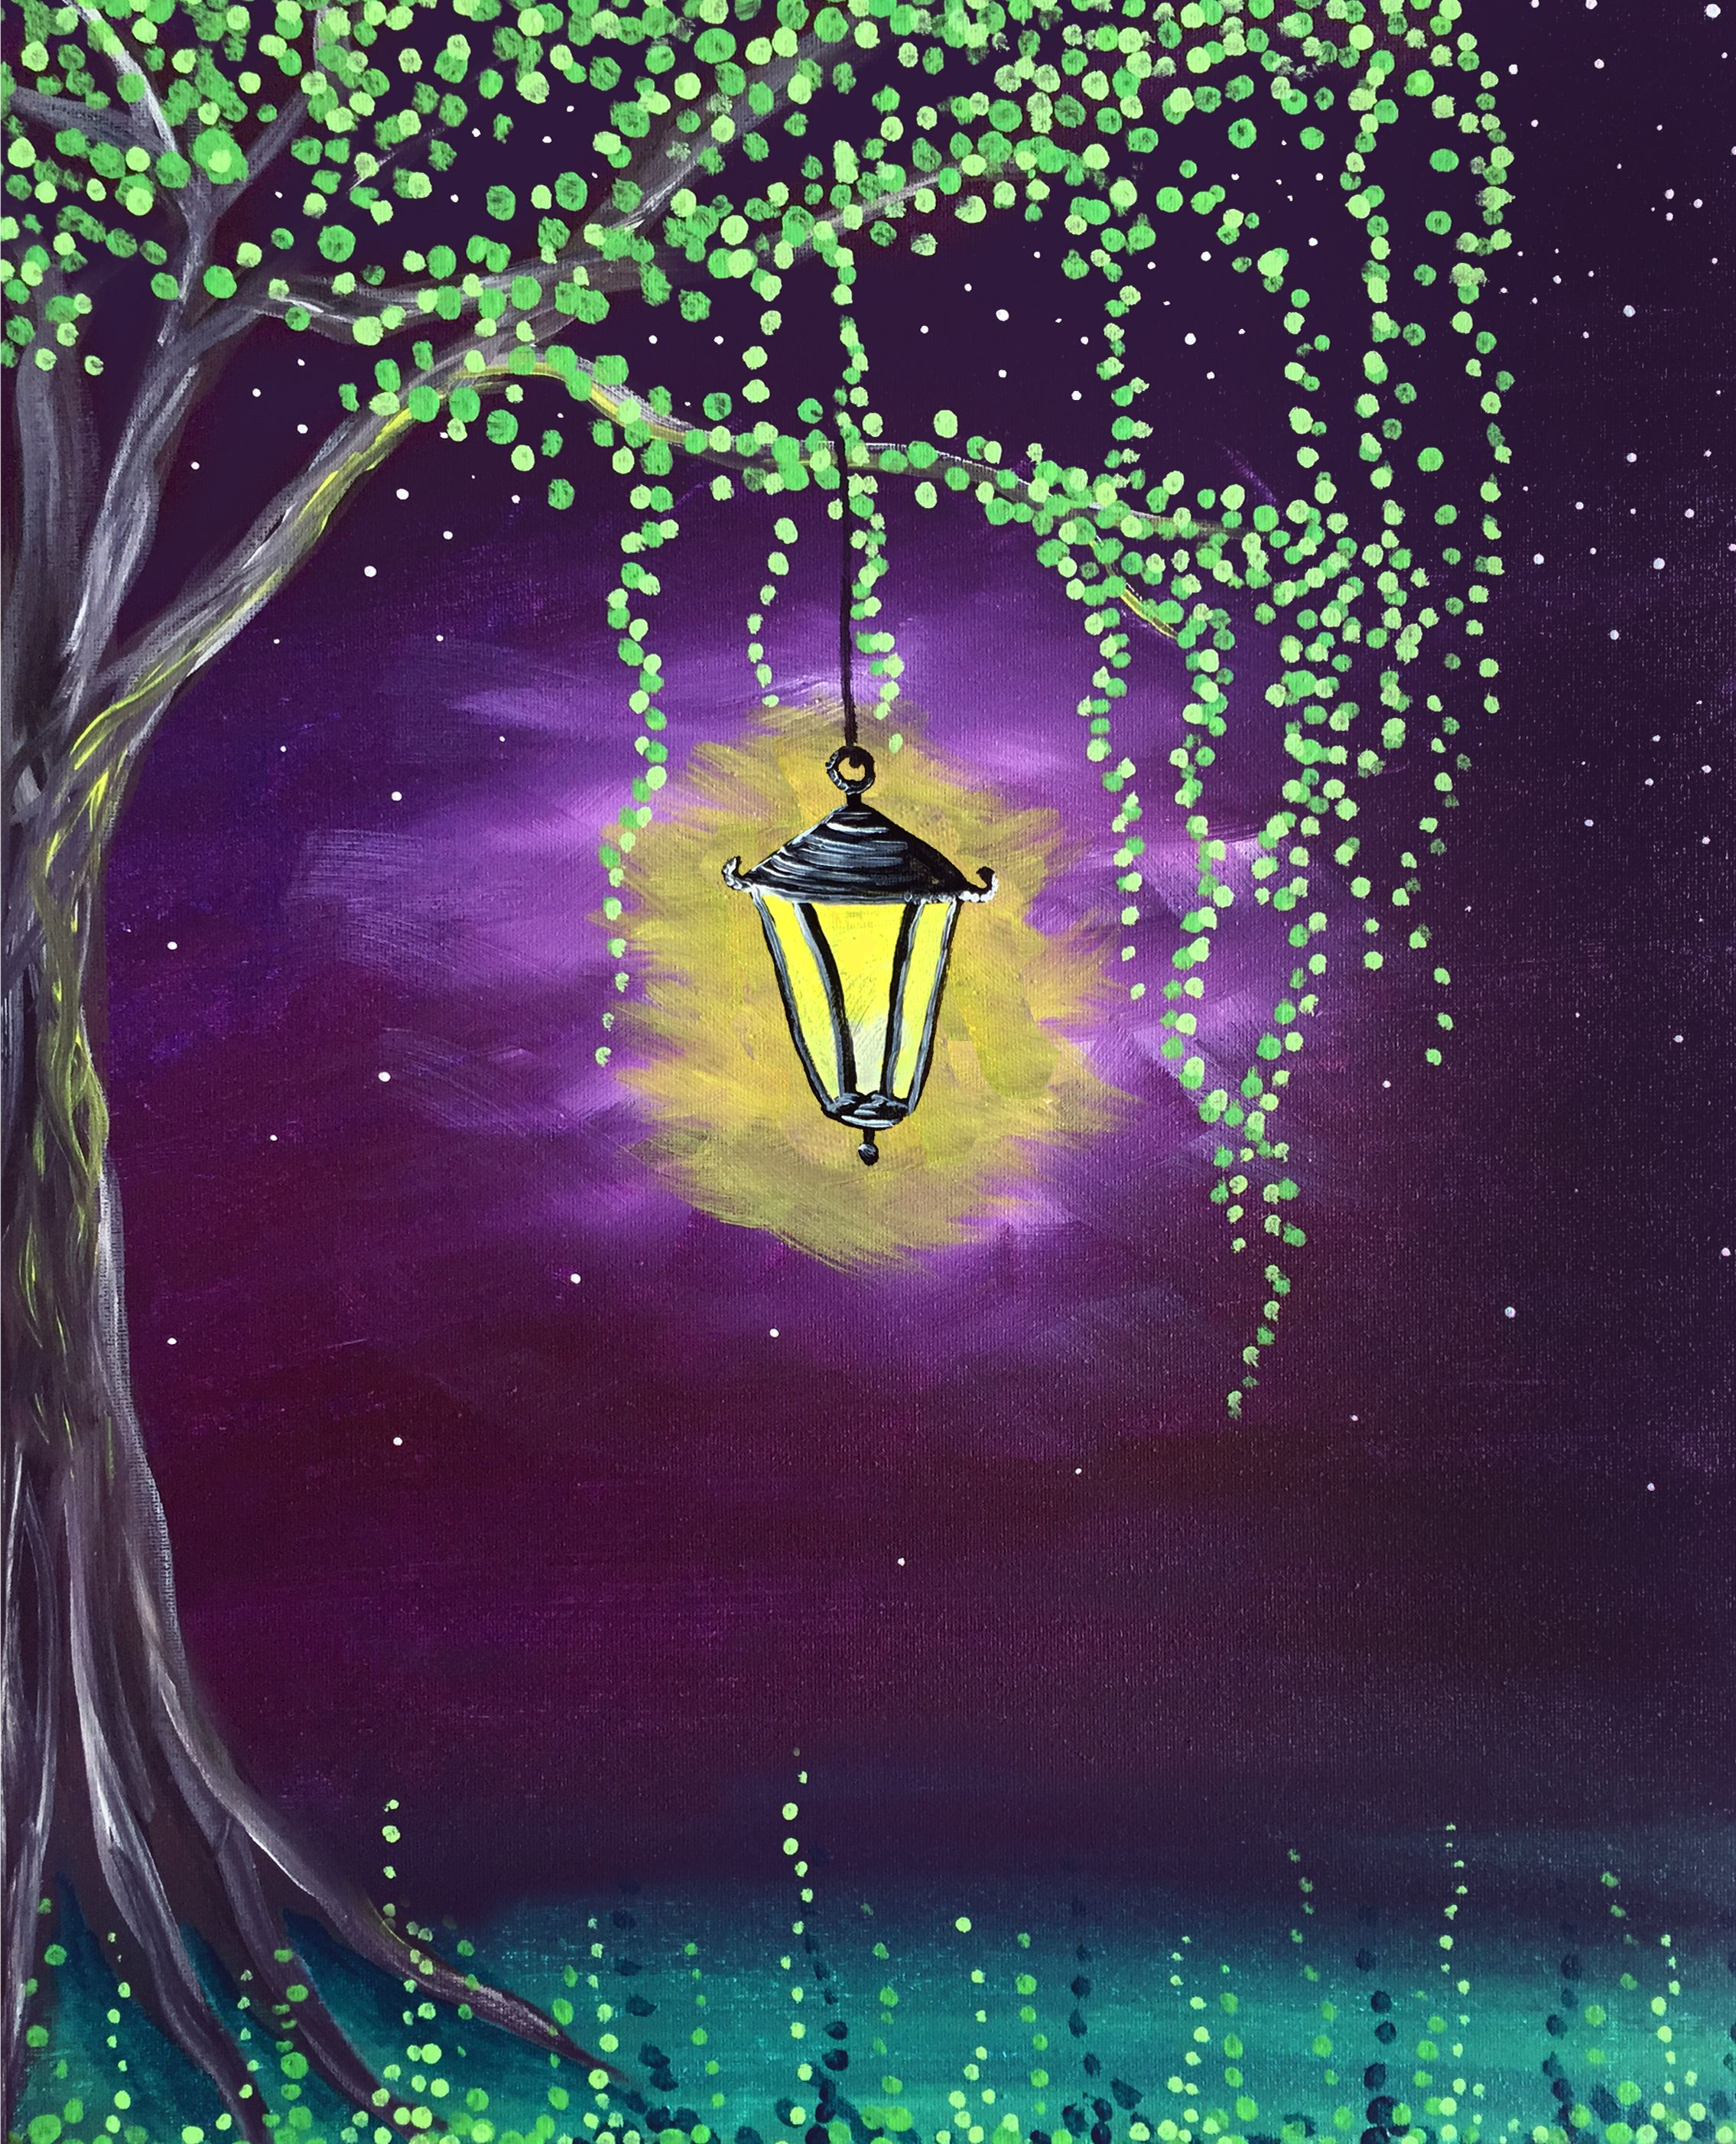 Join Us For A Paint Nite Event Sat Feb 06 2016 At 6157 N Broadway Chicago Il Purchase Your Tickets Online To Reserve A Fun Night Art Canvas Art Art Painting